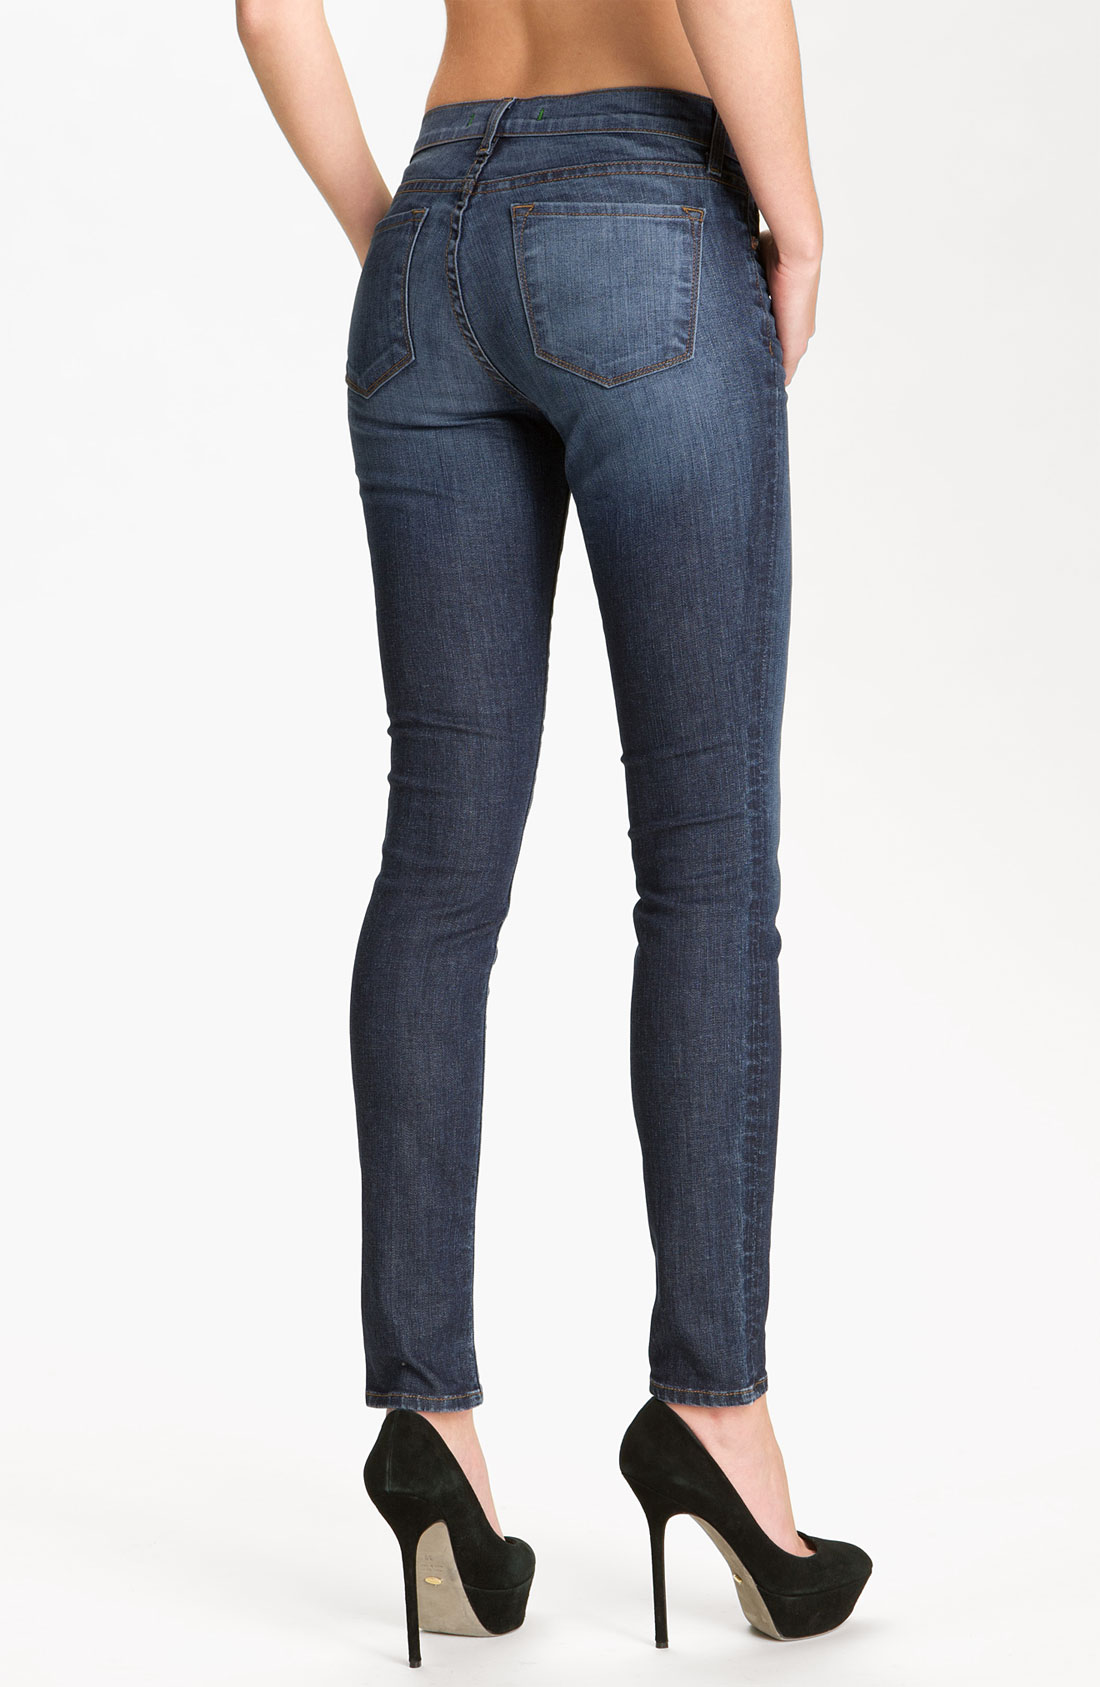 Womens Dark Blue Skinny Jeans